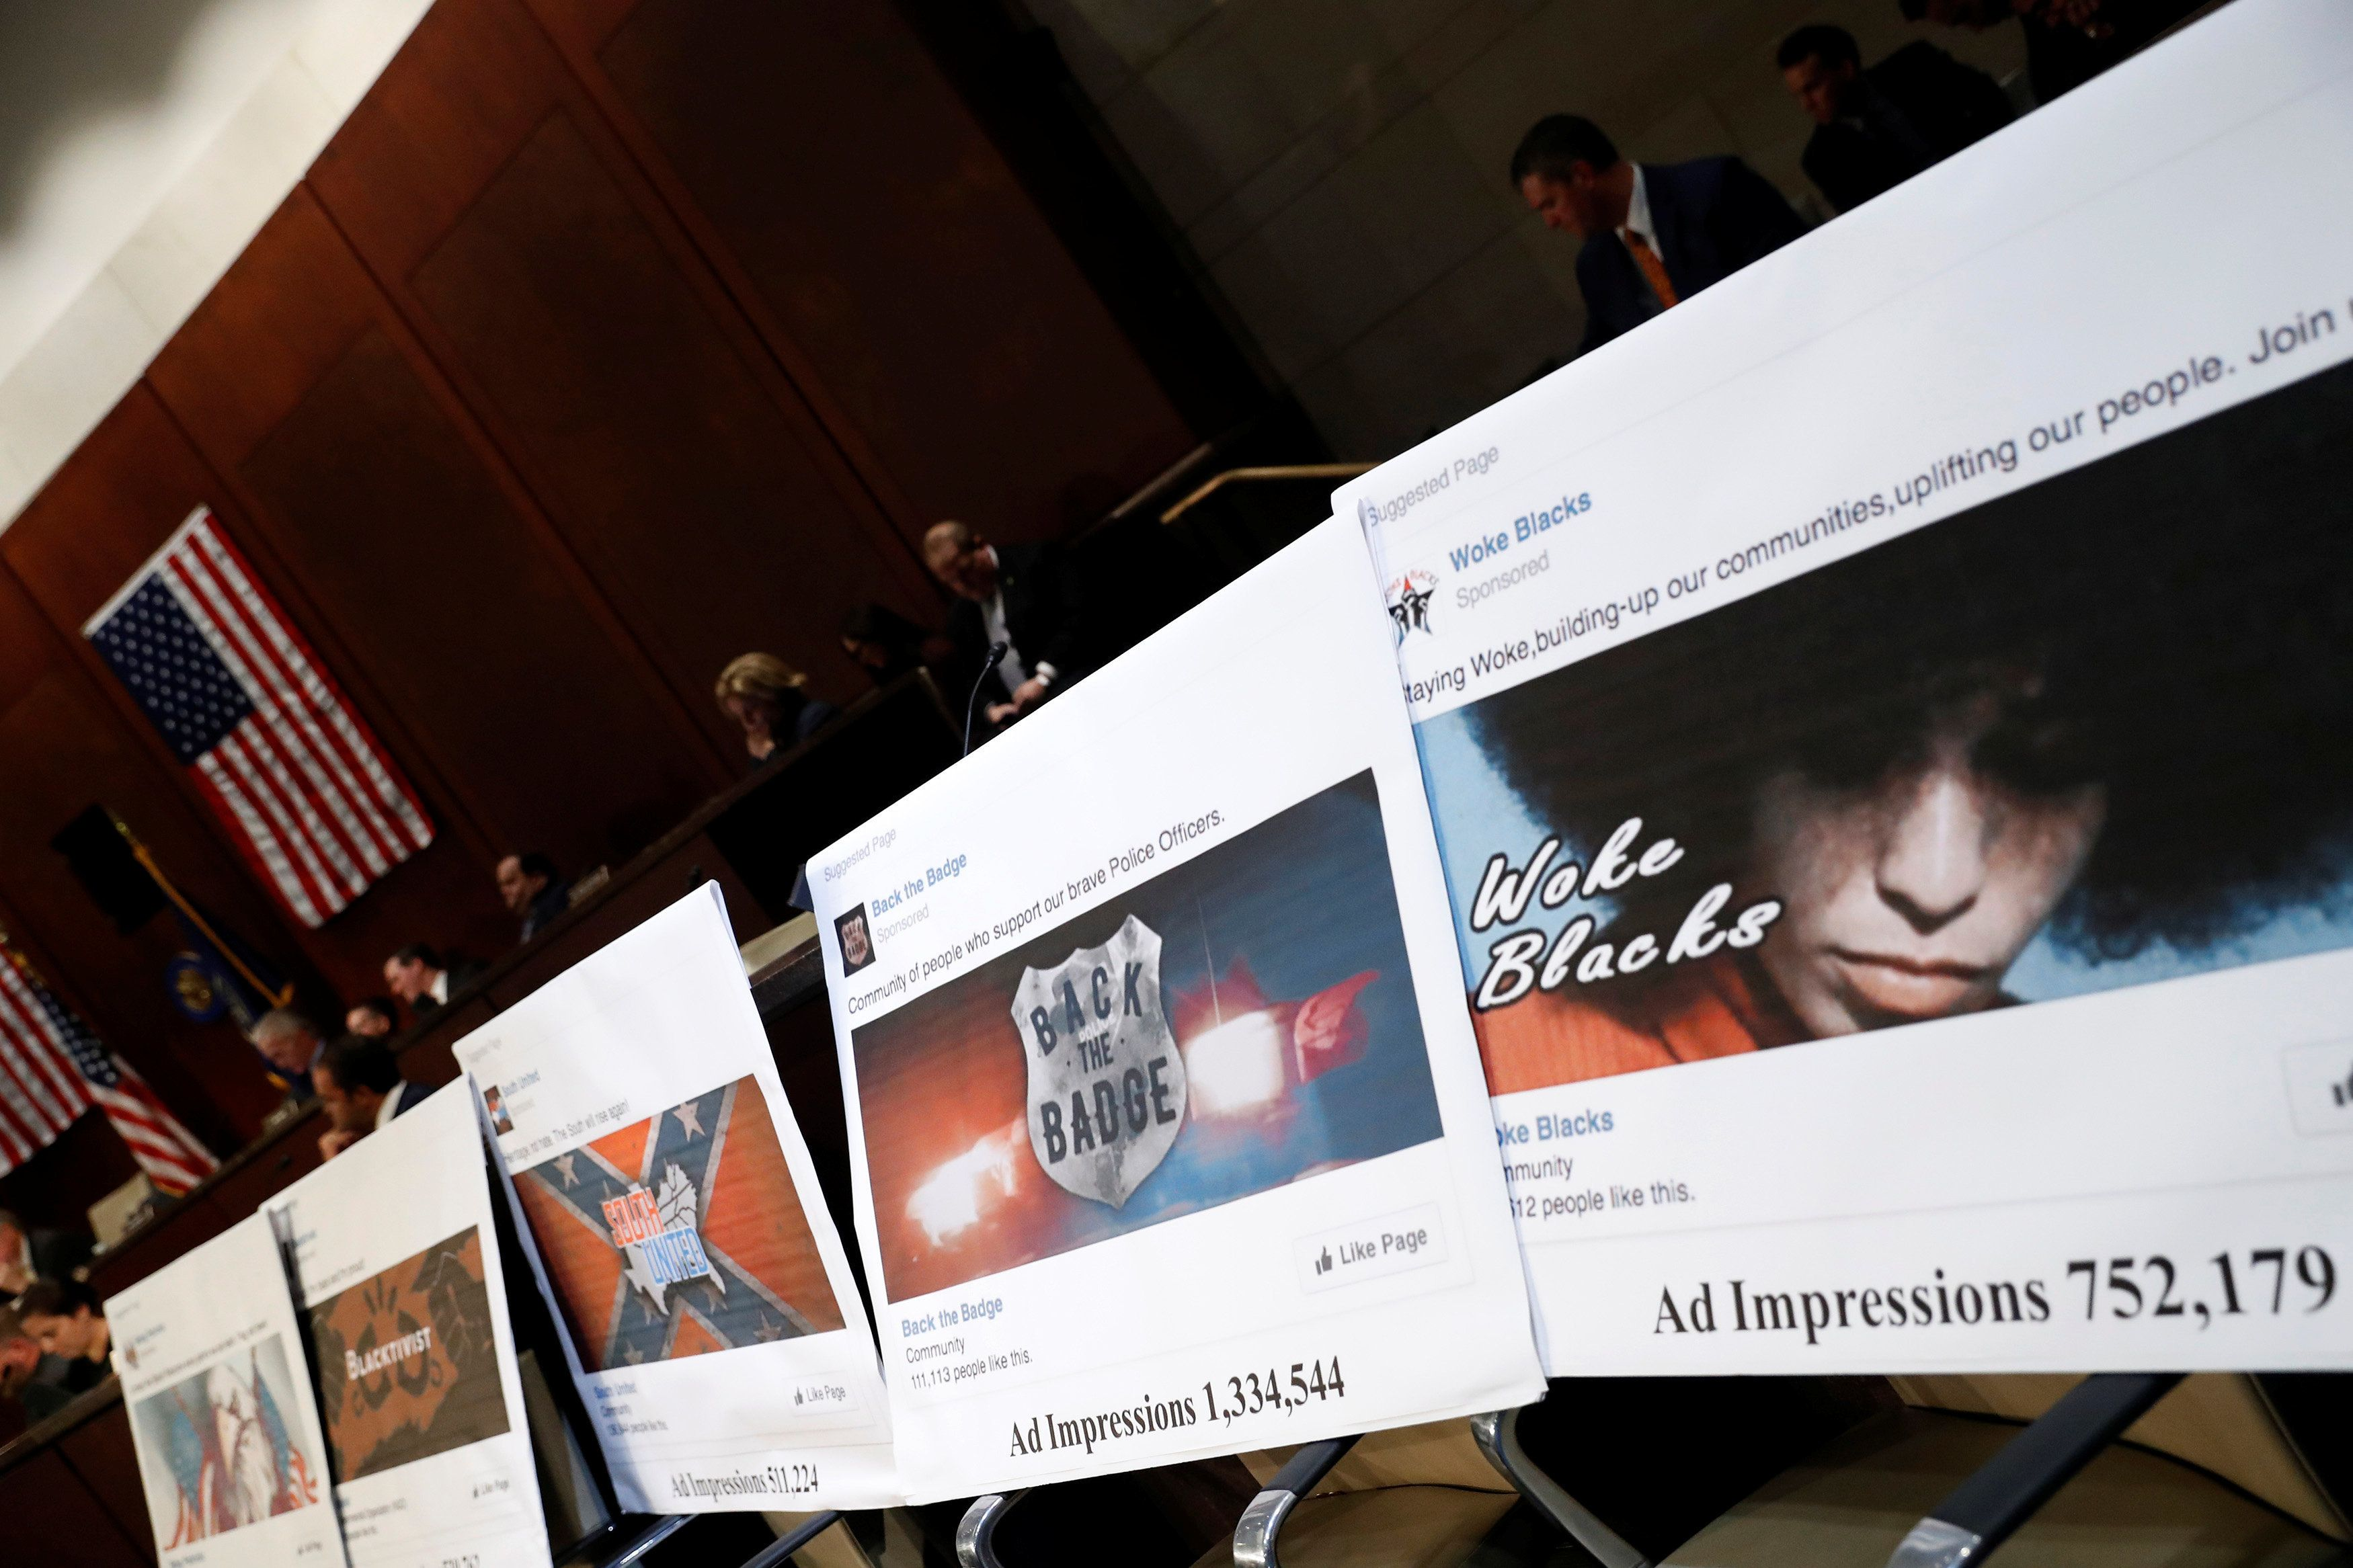 Examples of Facebook pages are seen, as executives appear before the House Intelligence Committee to answer questions related to Russian use of social media to influence U.S. elections, on Capitol Hill in Washington, U.S., November 1, 2017. REUTERS/Aaron P. Bernstein